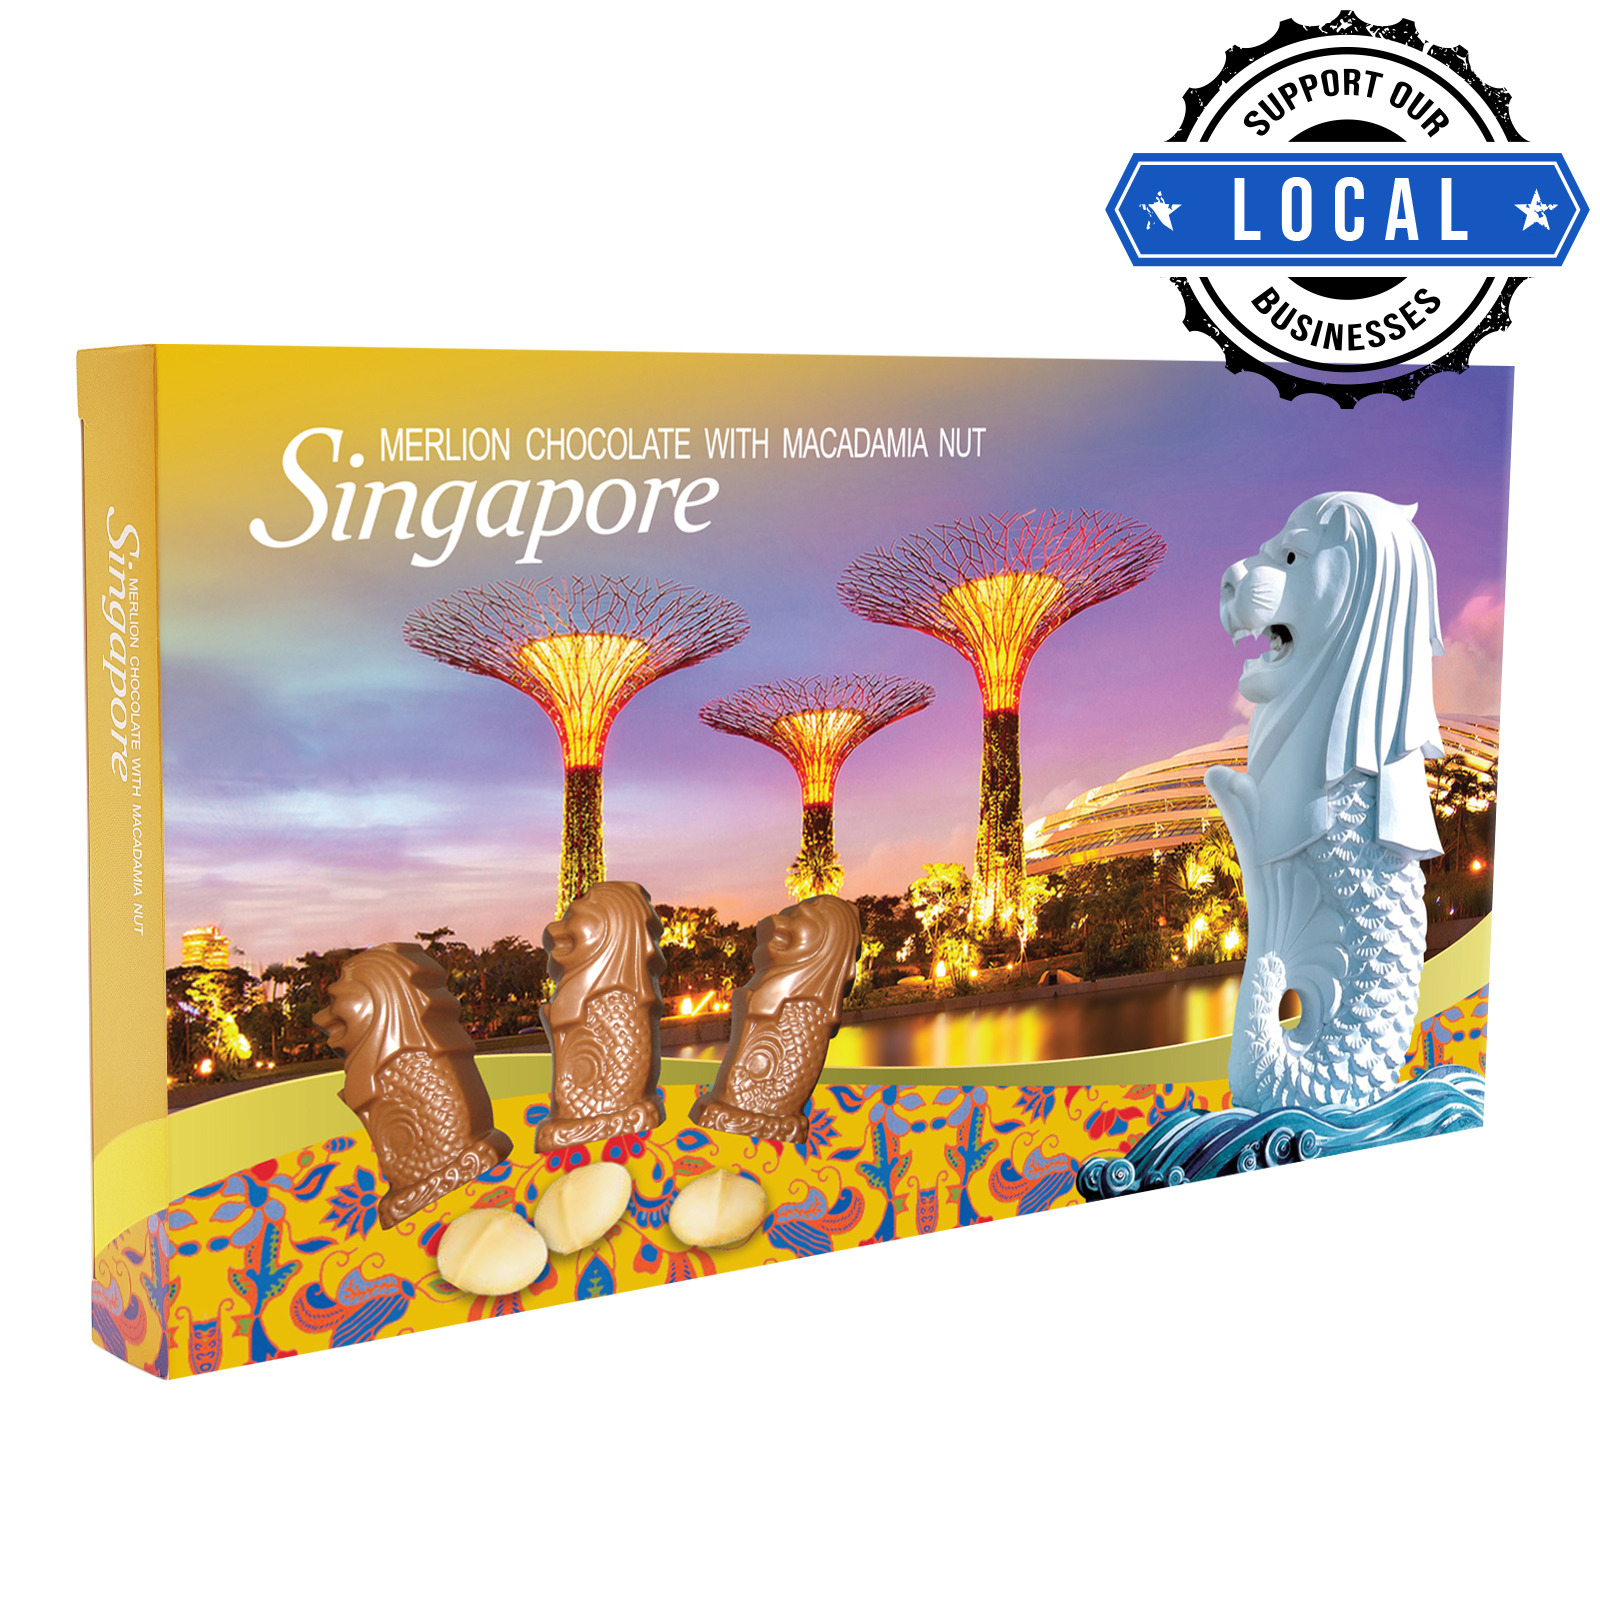 Manly Singapore Merlion Chocolate - Macadamia Nut